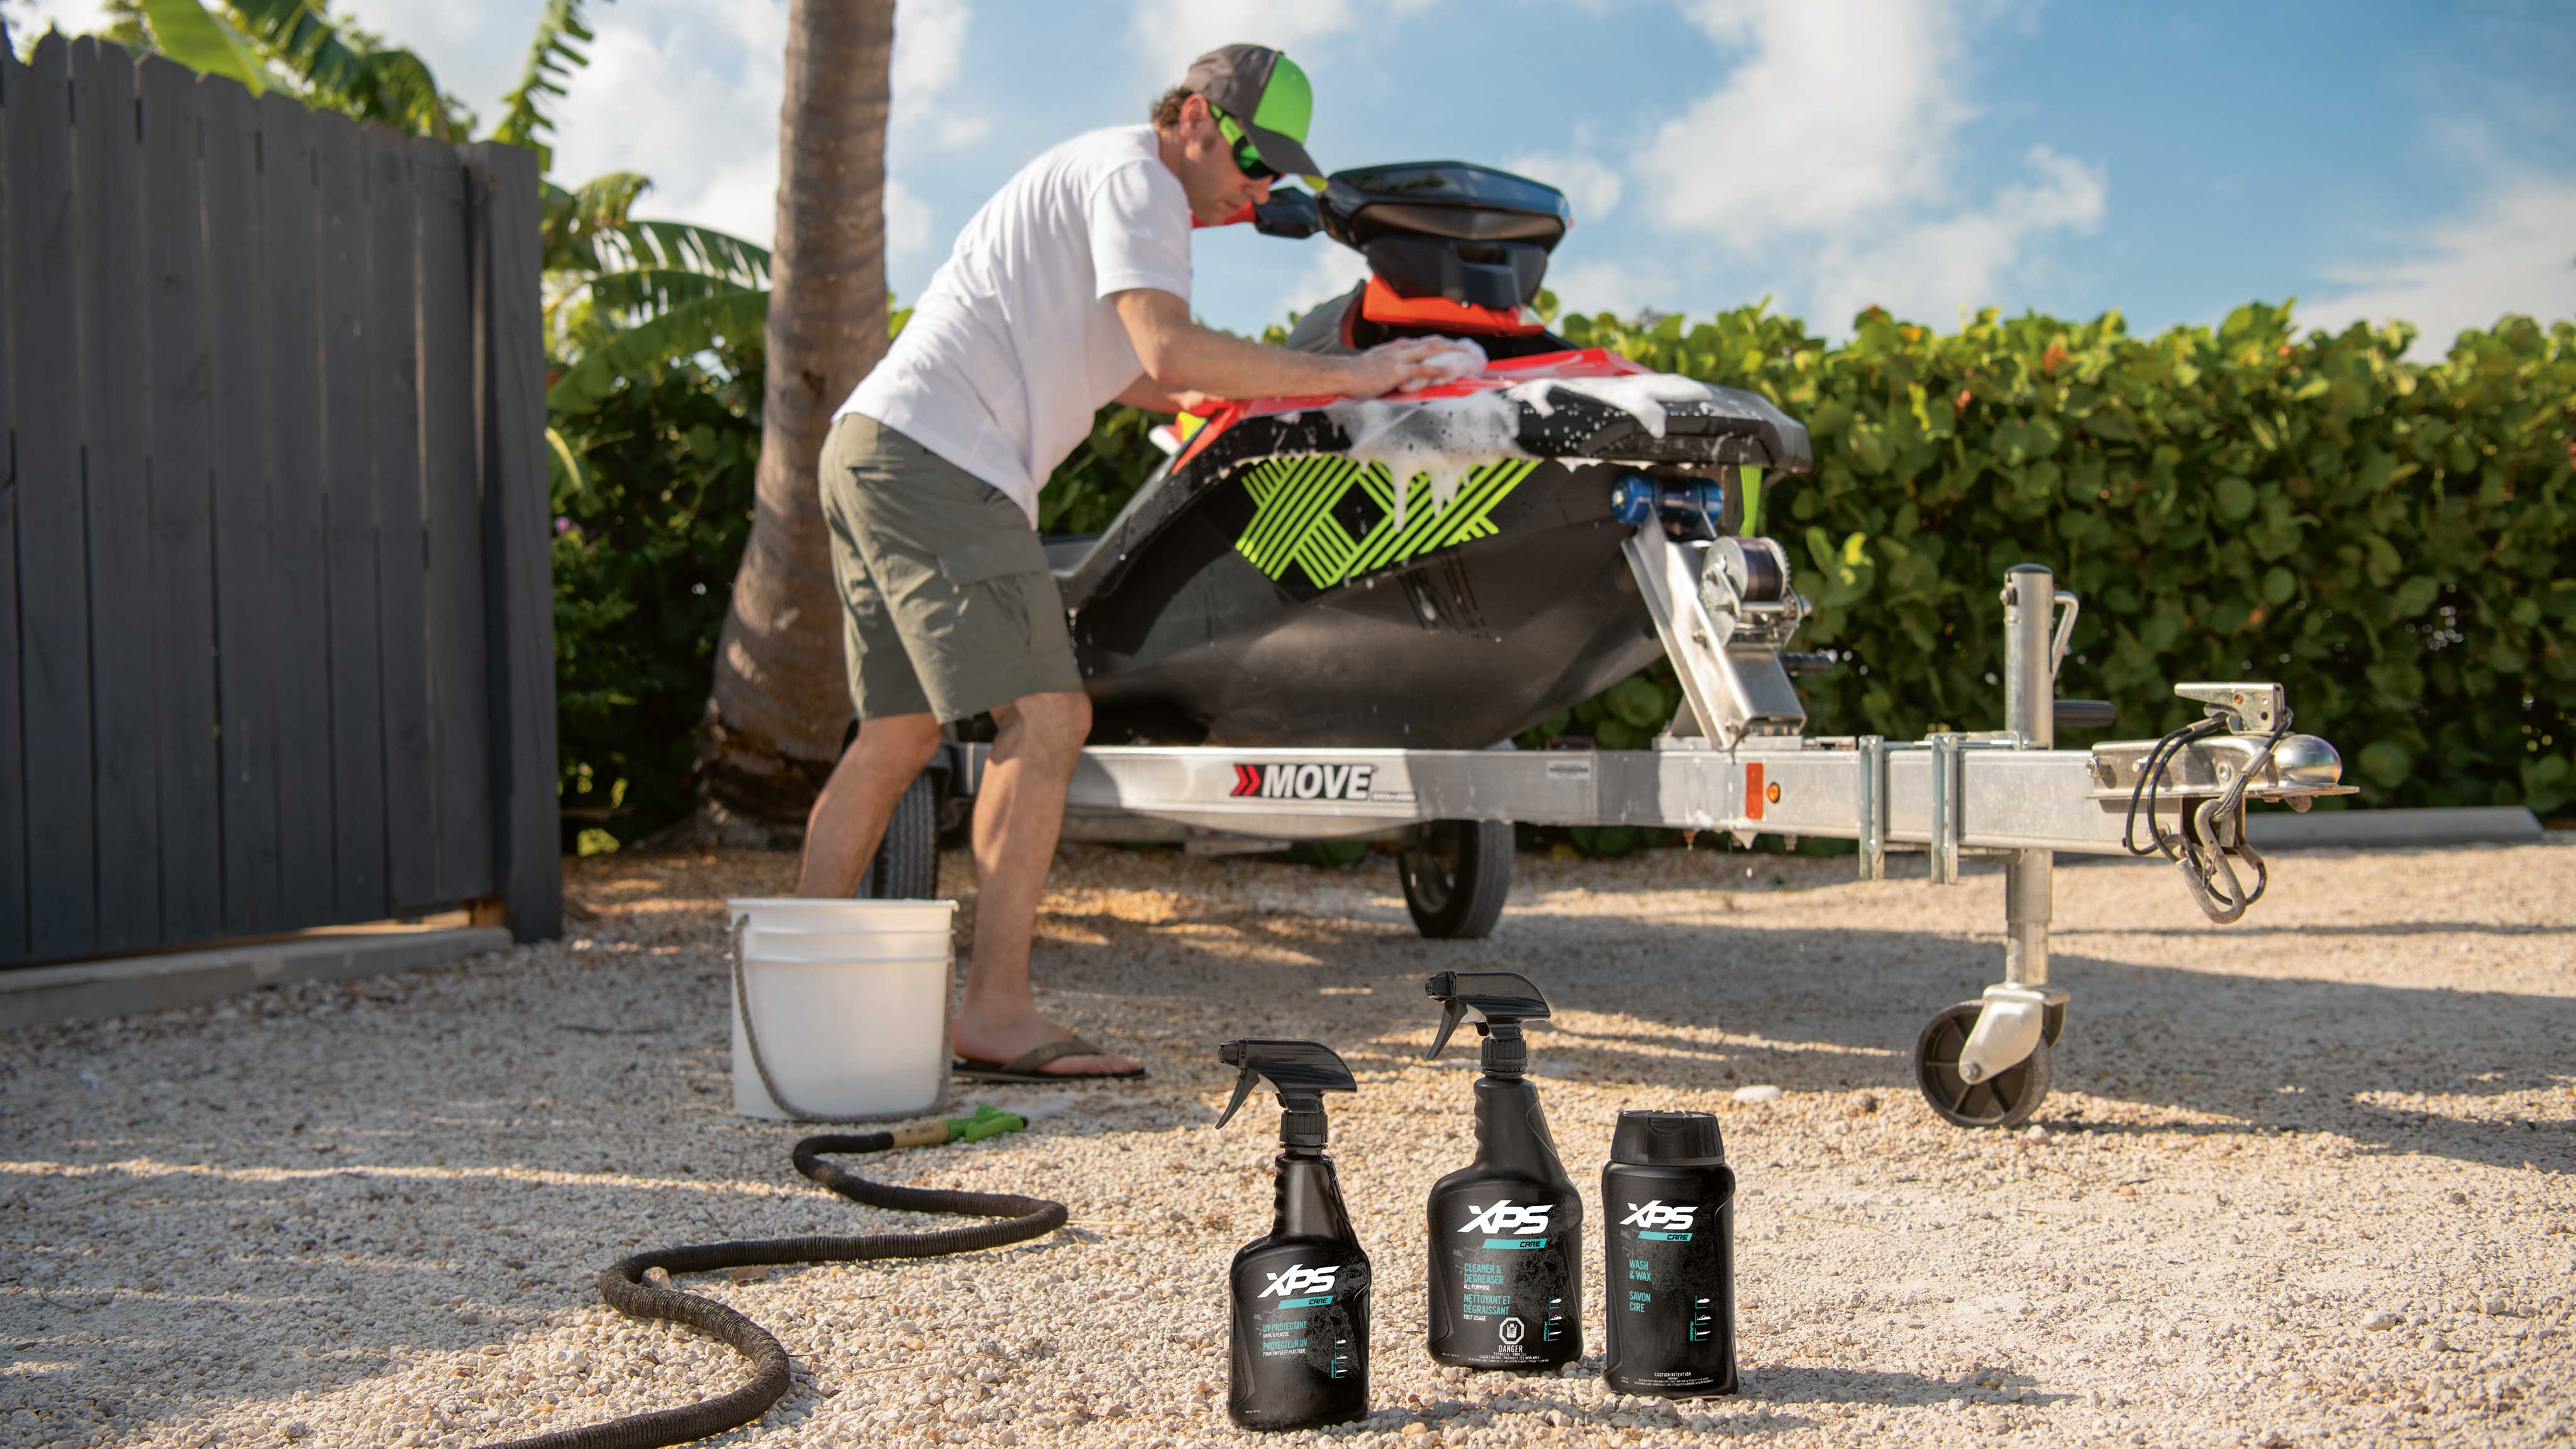 Men washing his Sea-Doo watercraft with XPS Care products